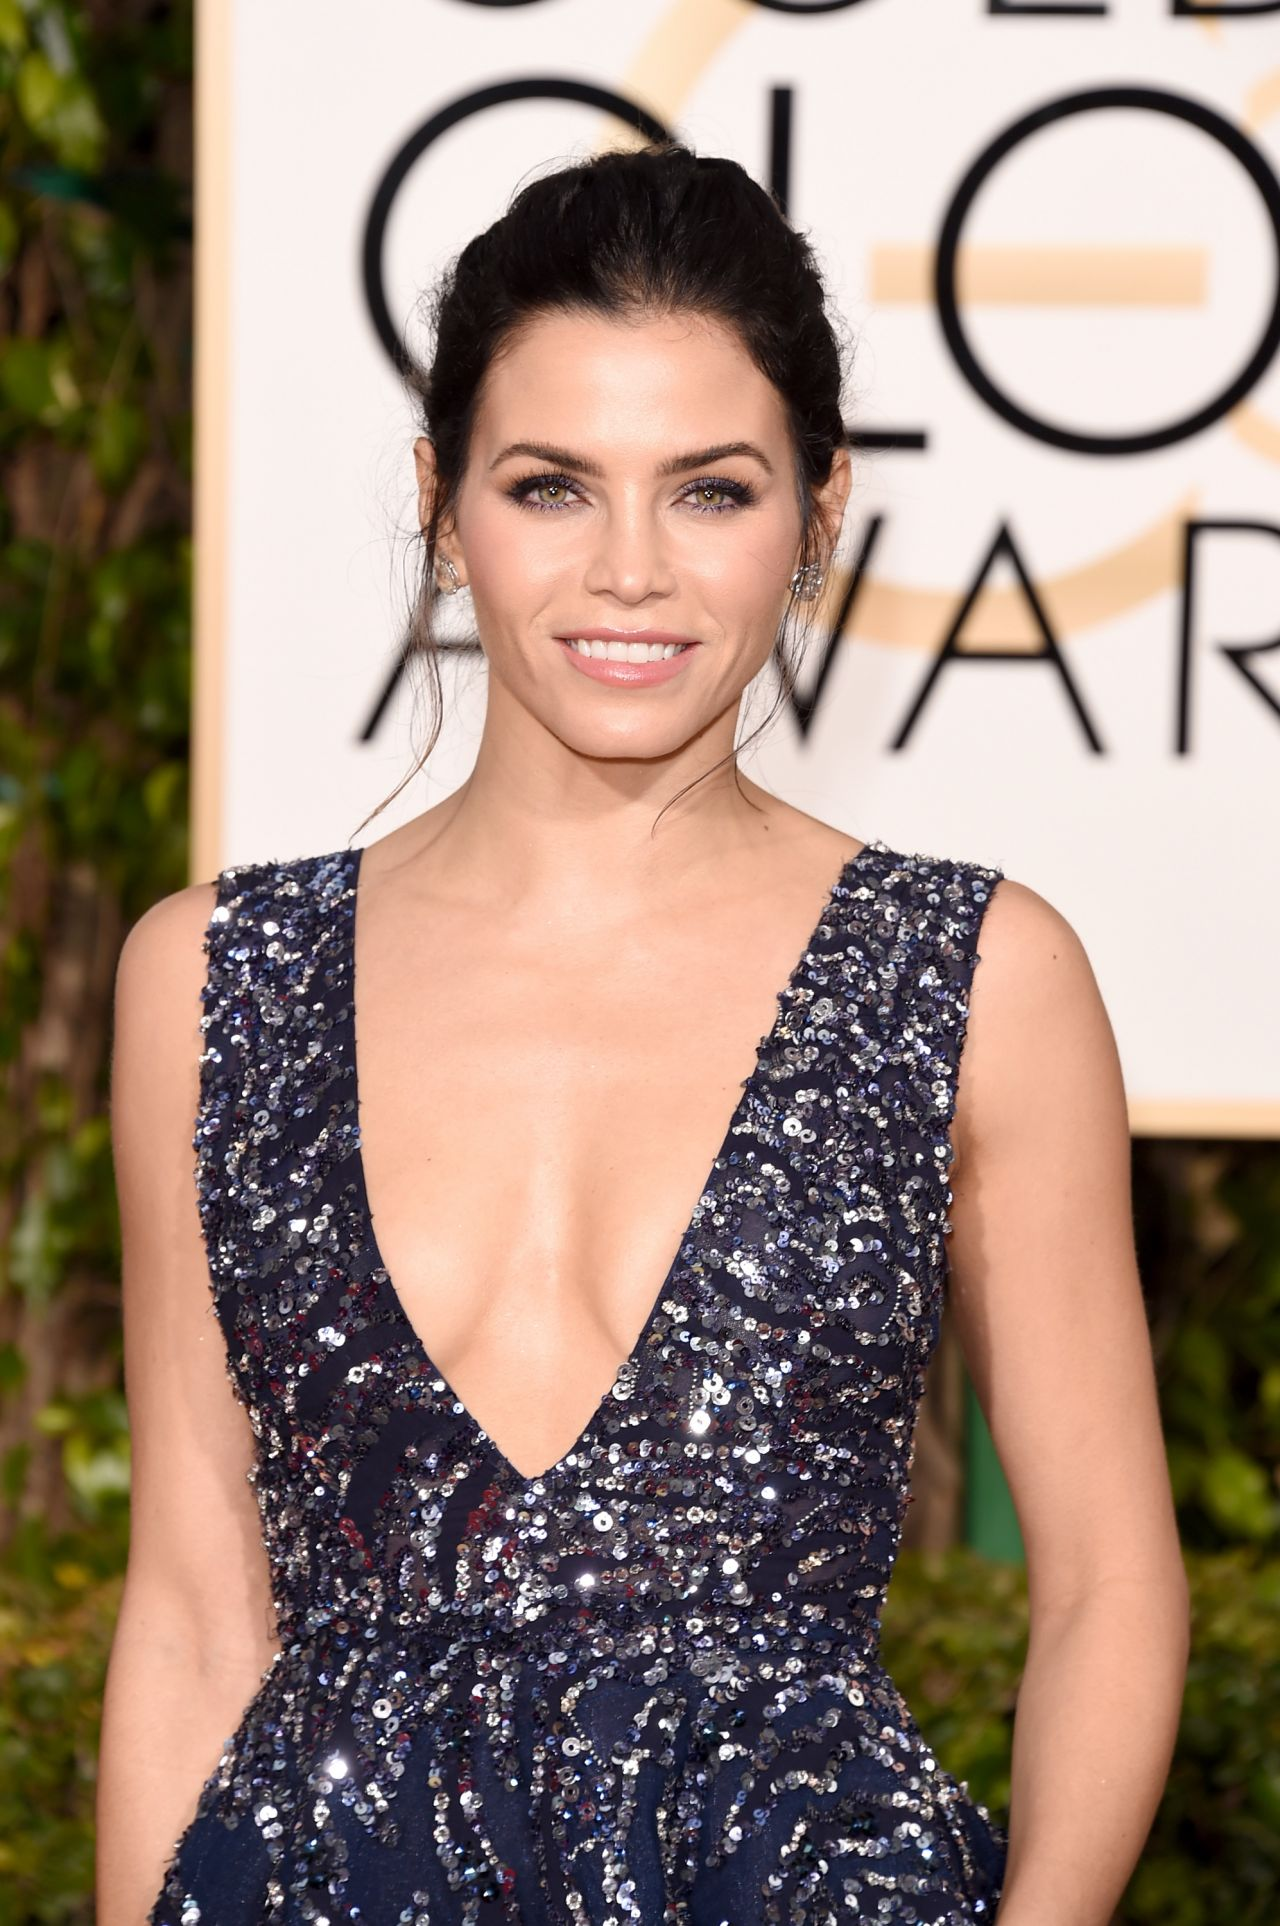 jenna-dewan-tatum-2016-golden-globe-awards-in-beverly-hills-1